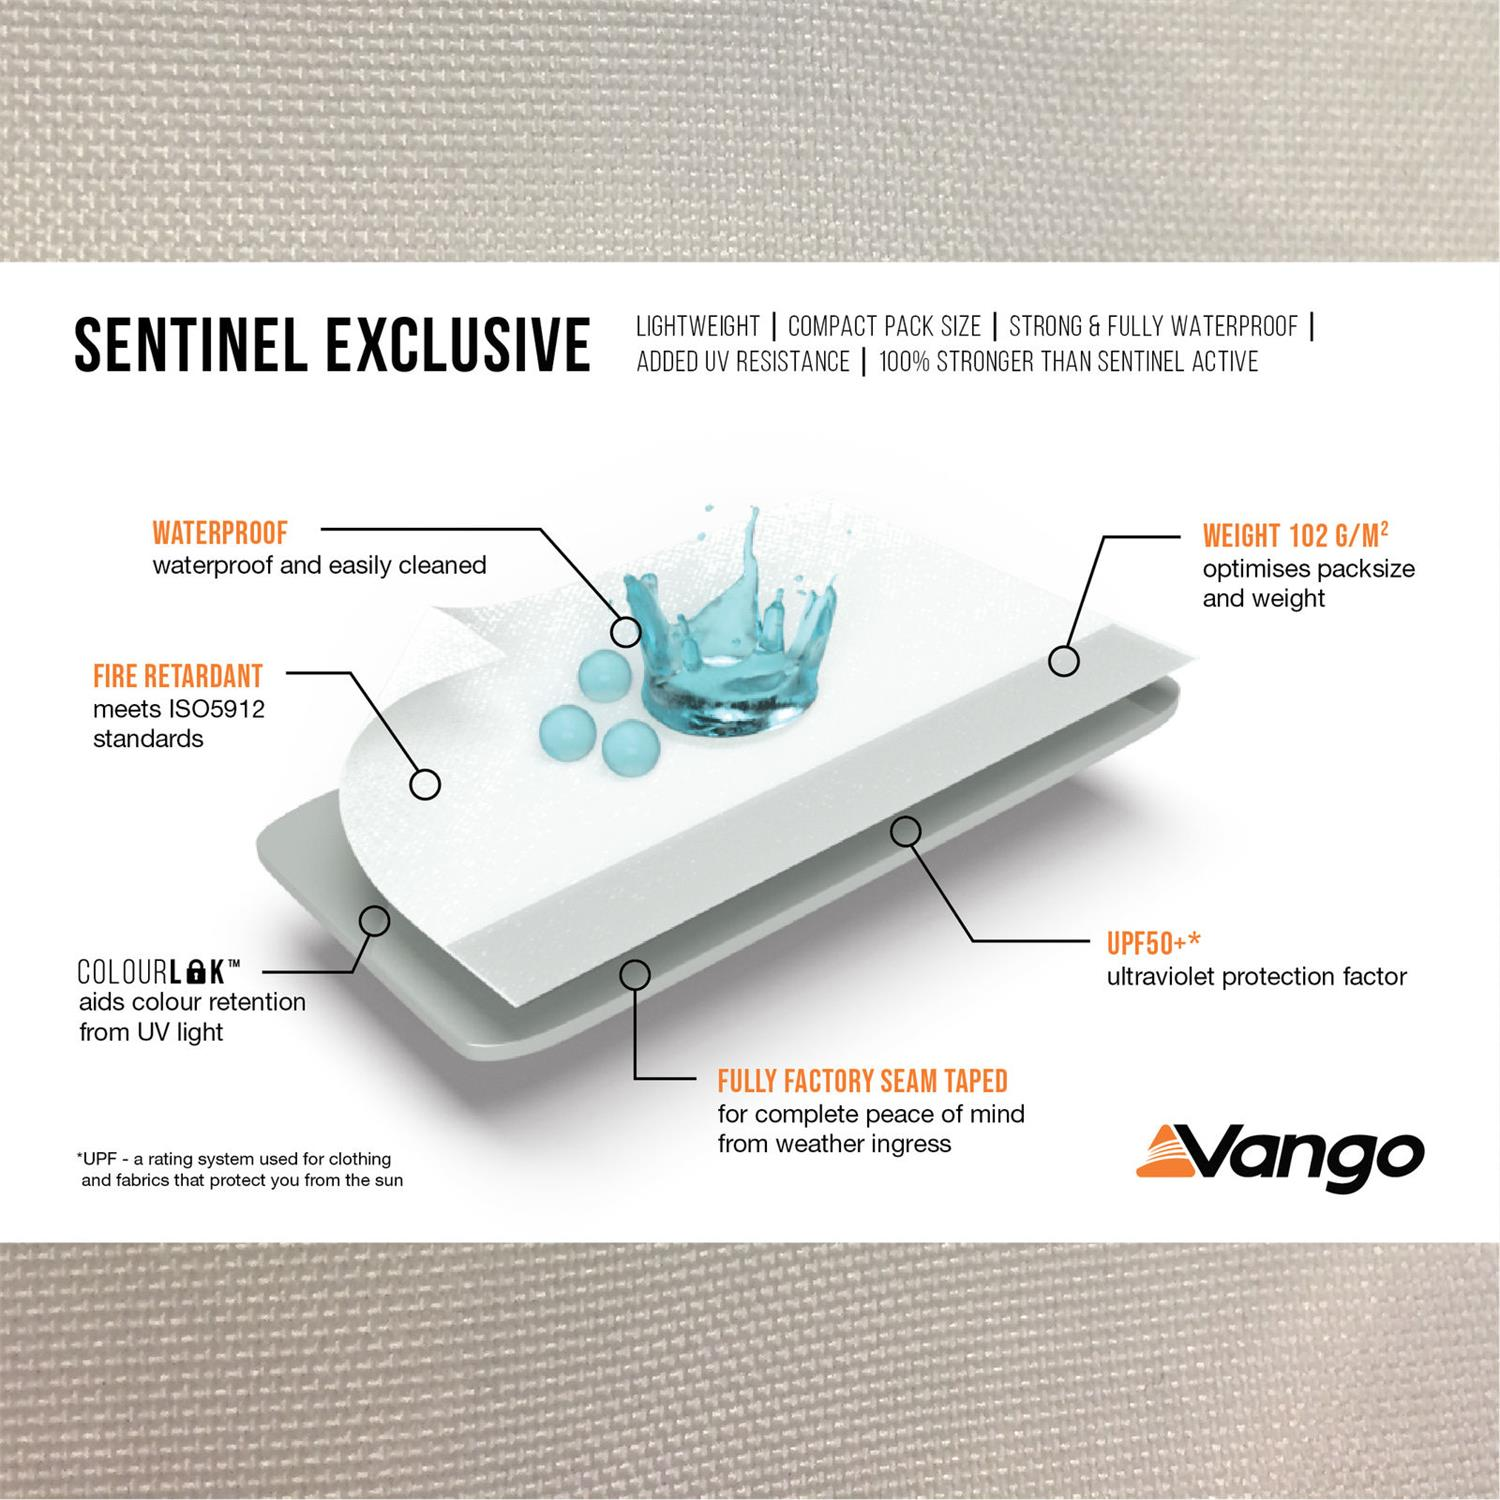 Vango's Sentinel Exclusive Fabric.